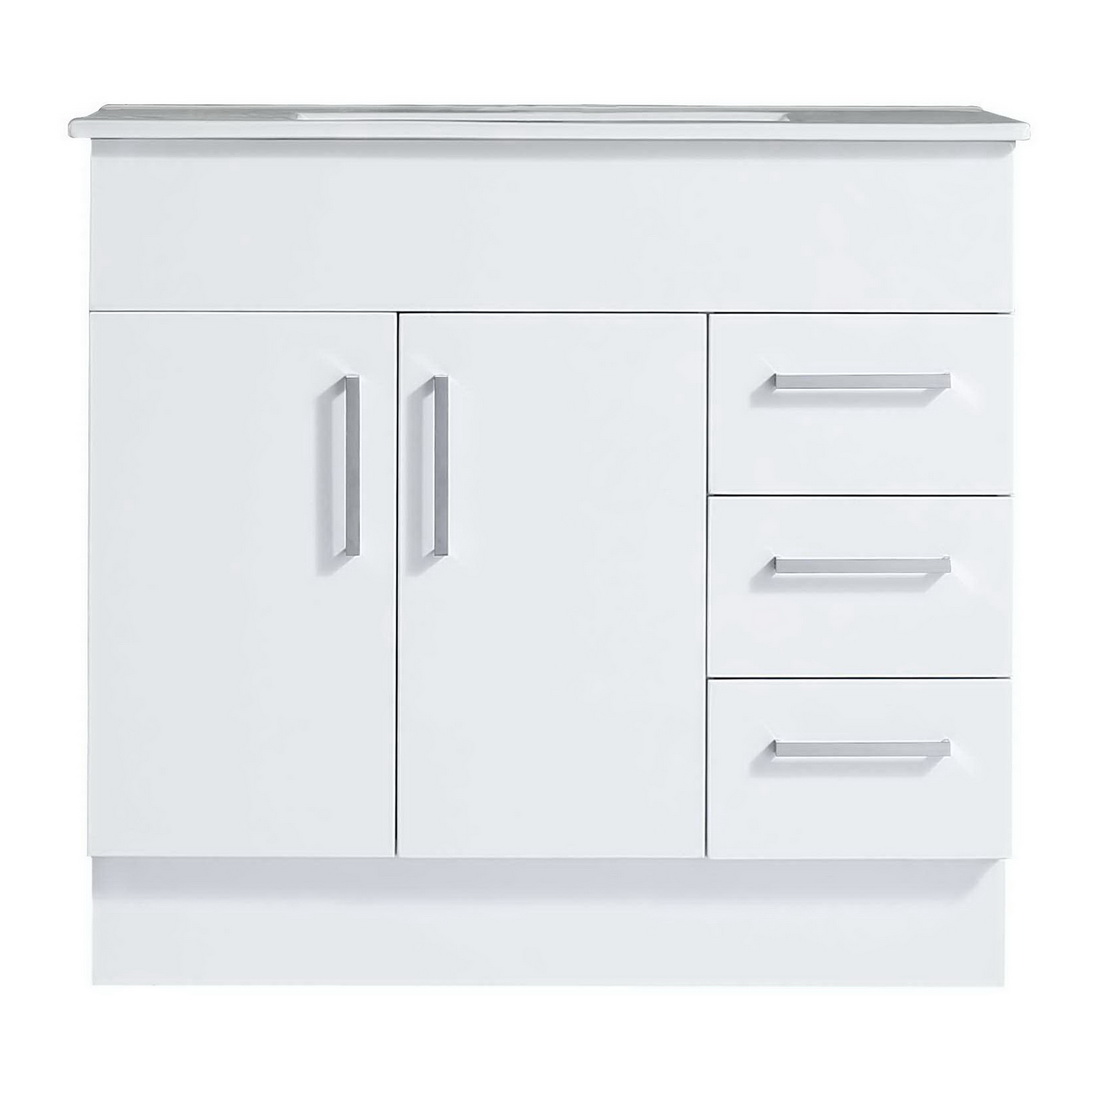 Projex 900 Floor Standing Vanity White Gloss 3 Drawer 2 Door